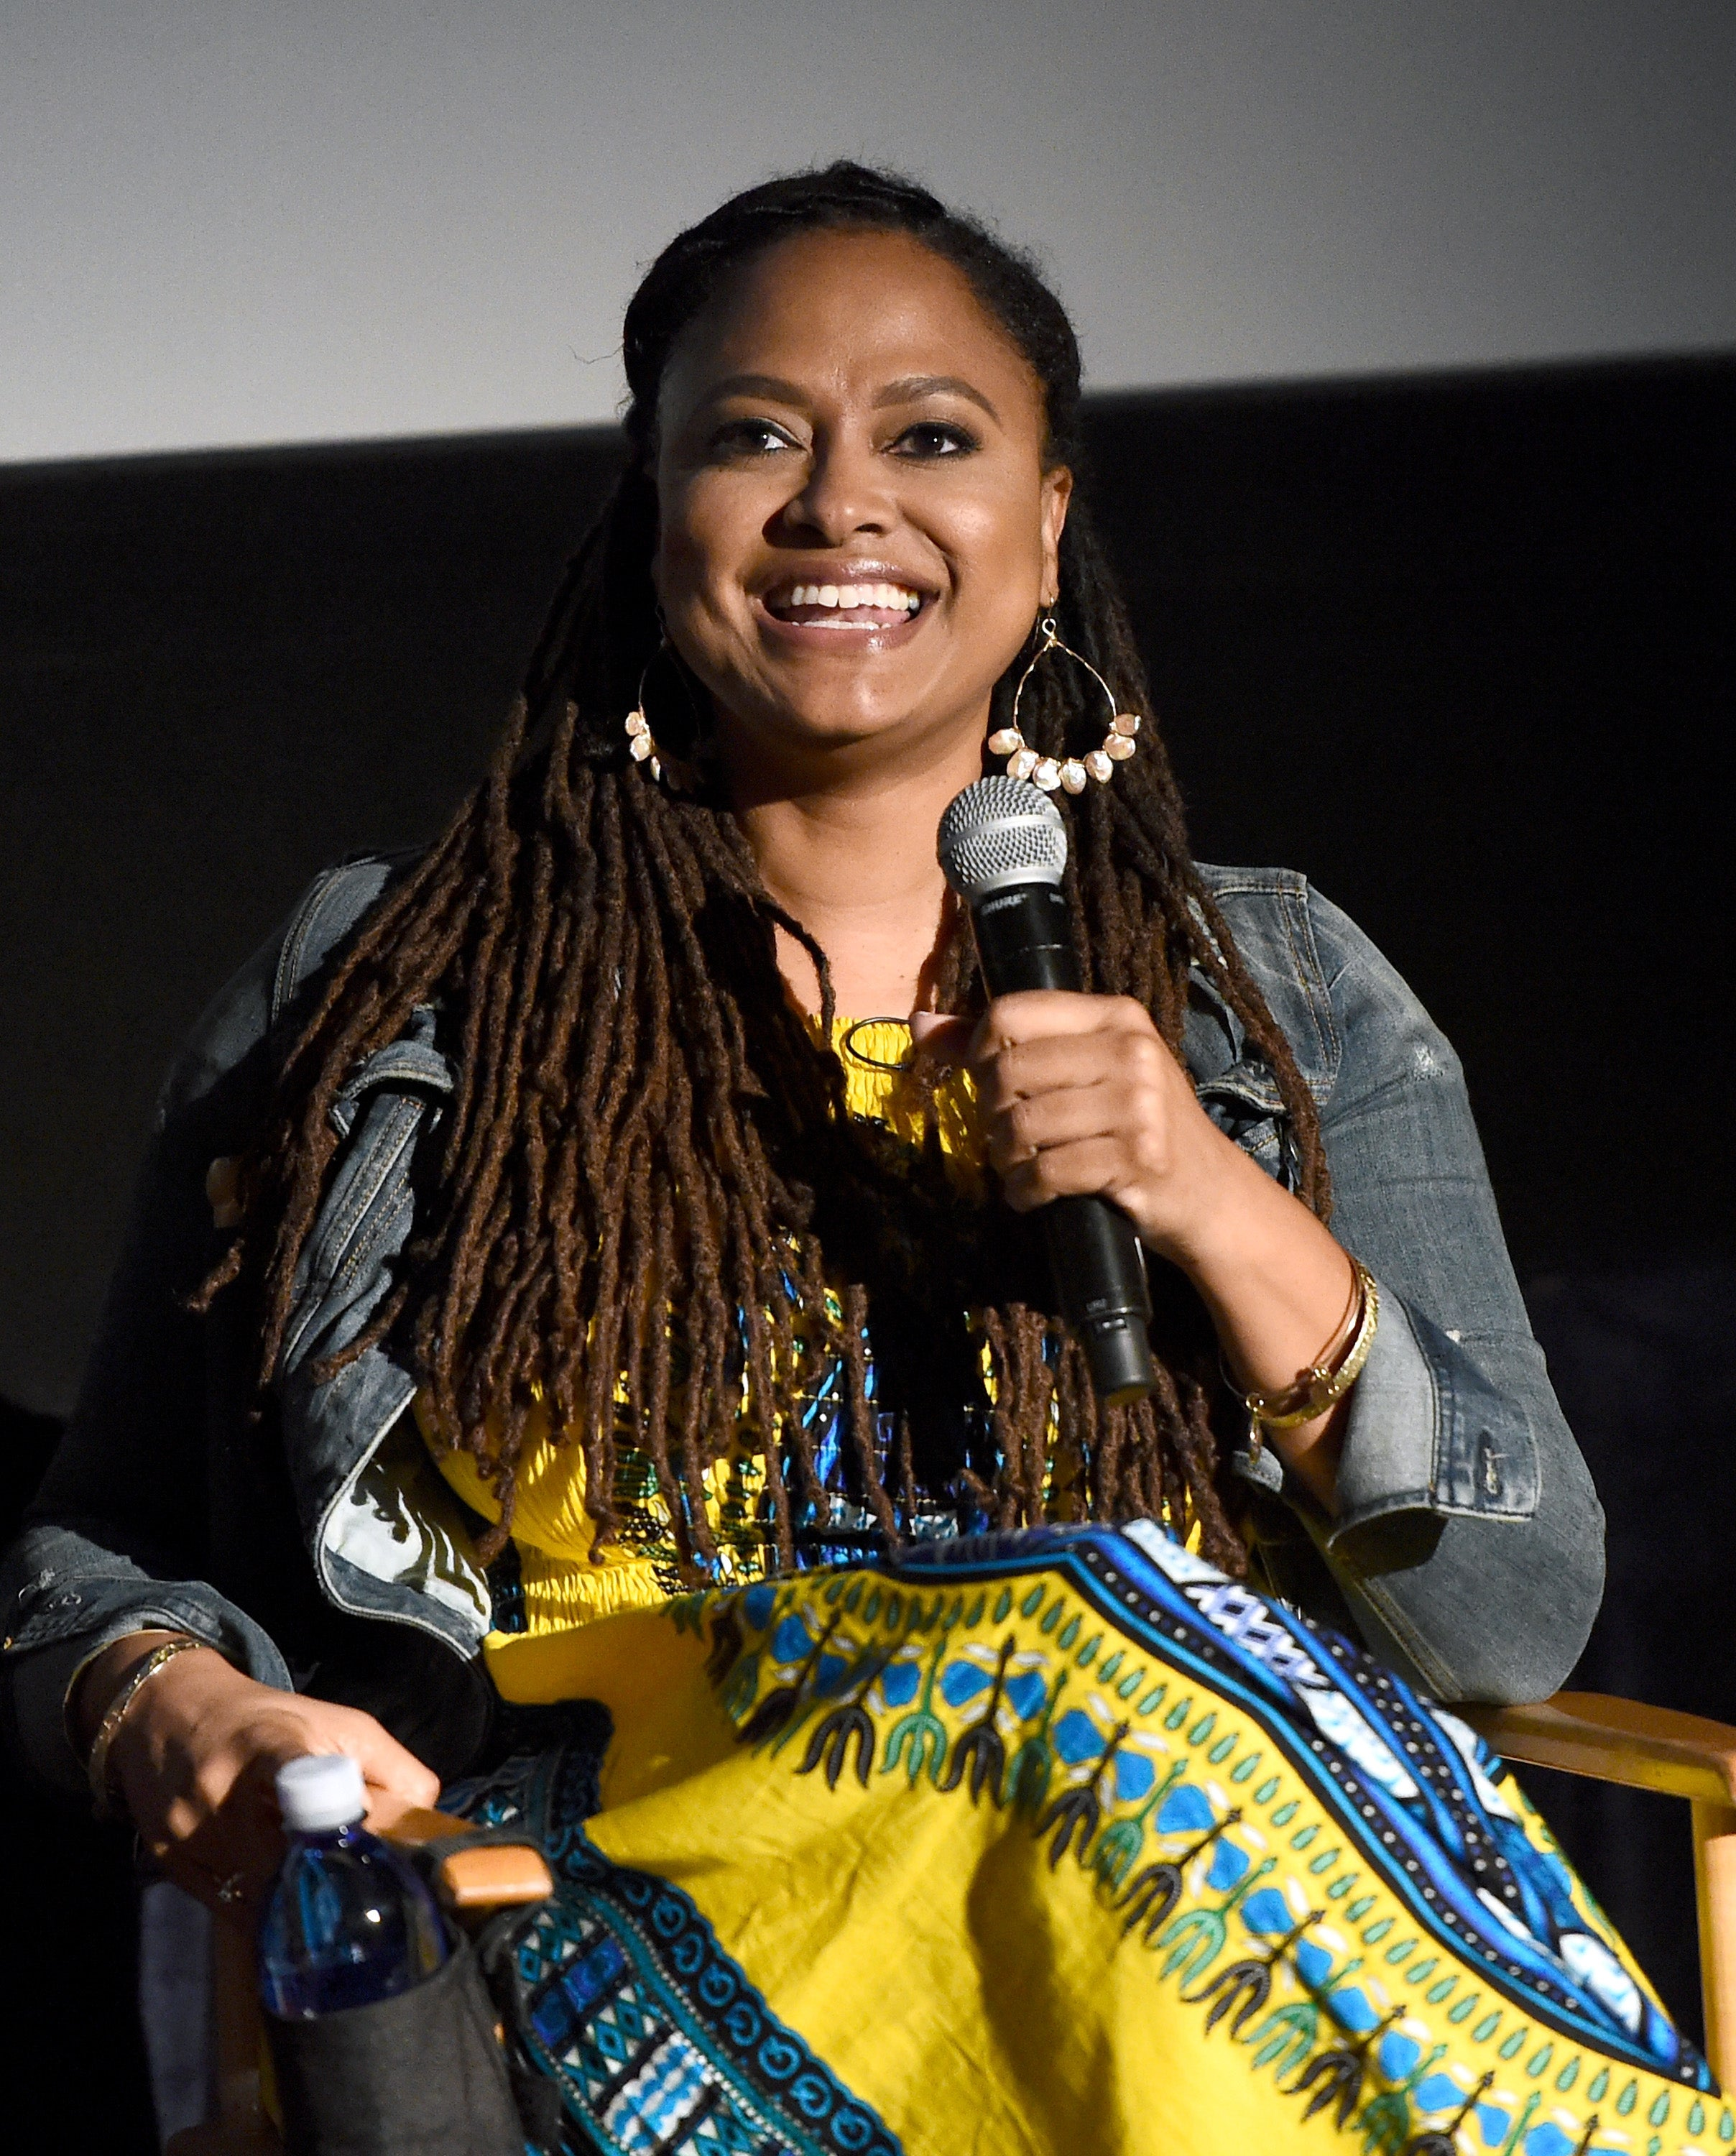 Ava DuVernay Is Kicking Off Women's History Month With A Powerful Twitter Takeover